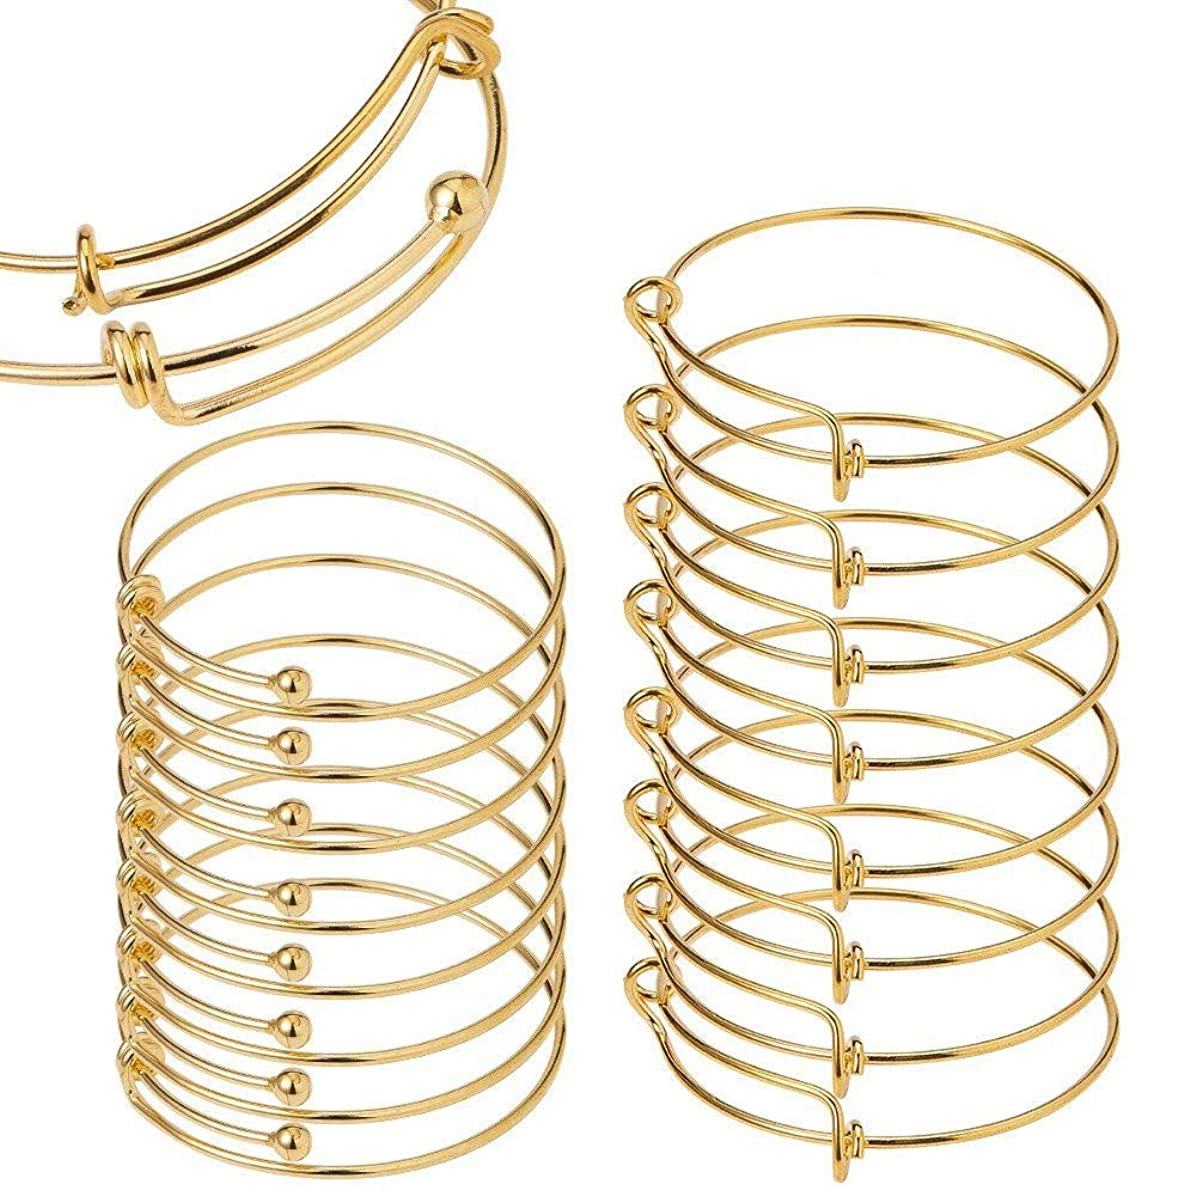 BENECREAT 16PCS/Set Adjustable Wire Blank Bracelet Expandable Bangle for DIY Jewelry Making, 2.5 Inch, 2.6 Inch - Golden